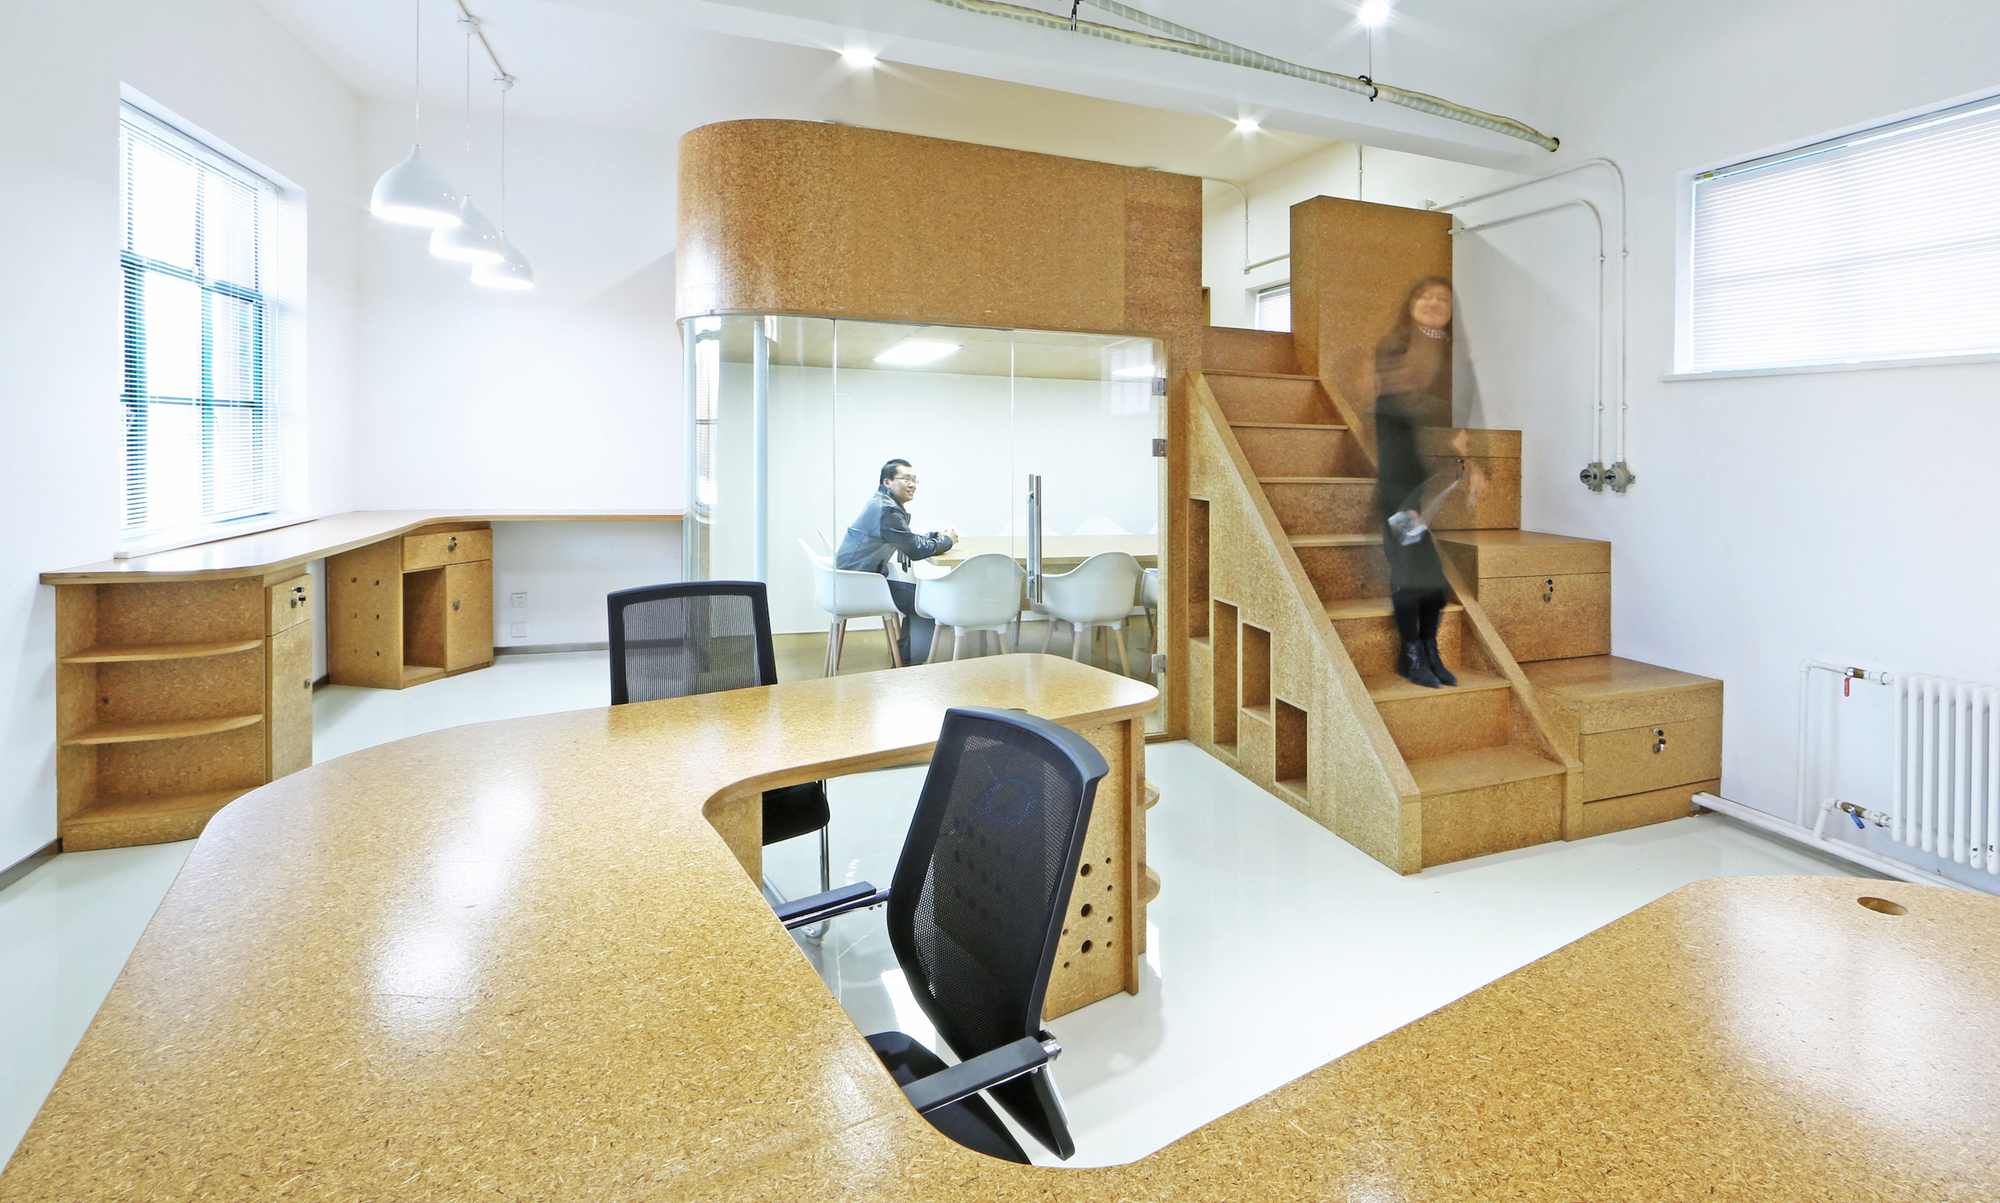 Gallery of 751 creative industrial office design - Office industrial ...